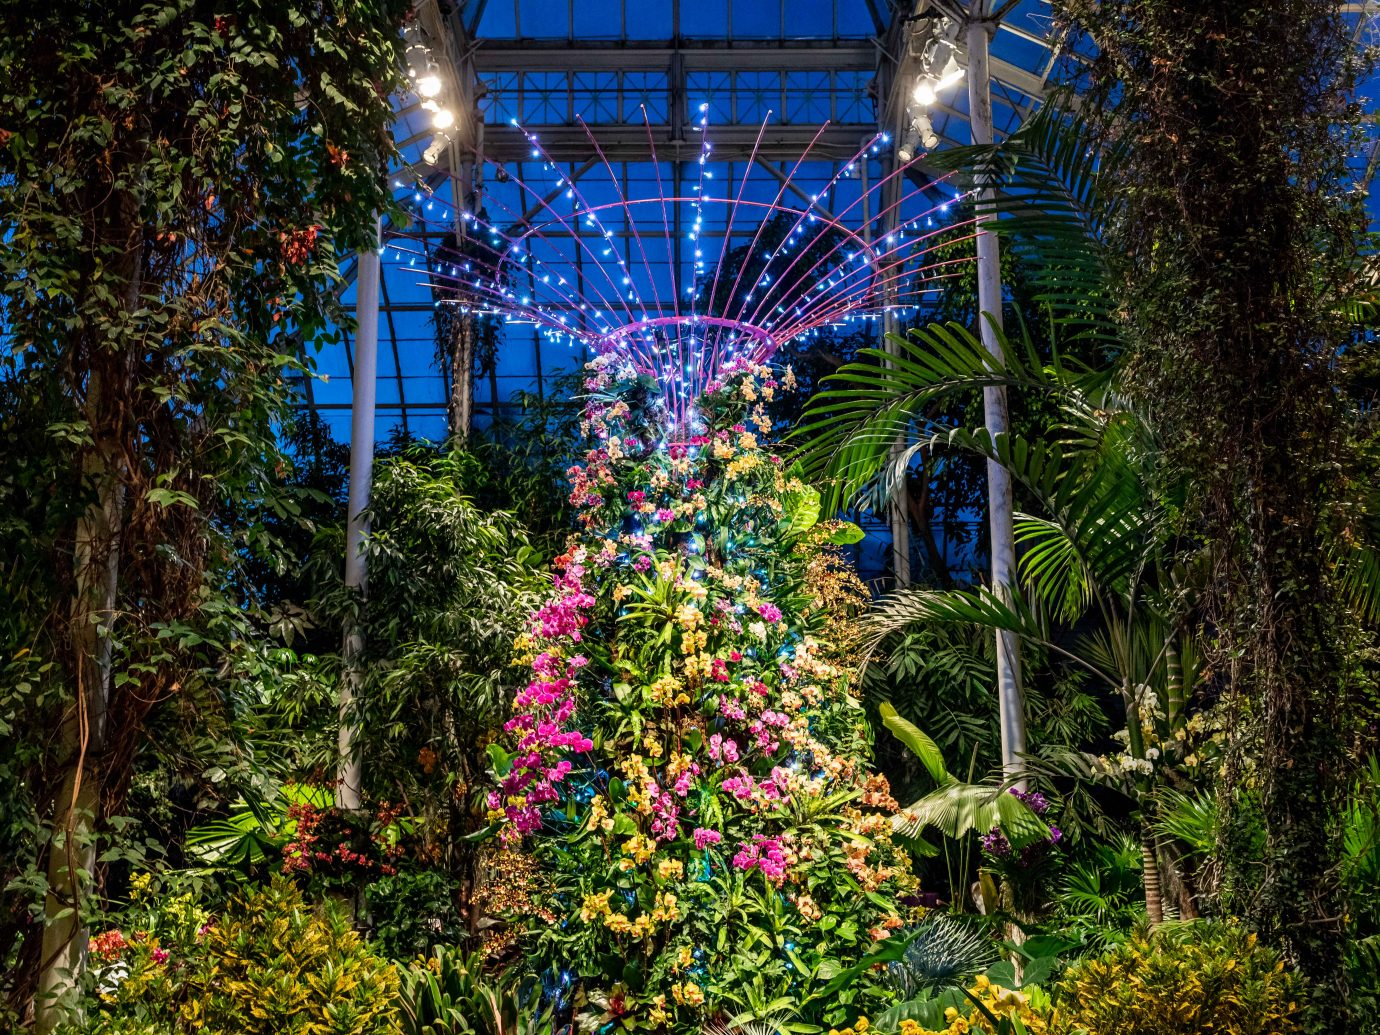 orchids inside greenhouse at night